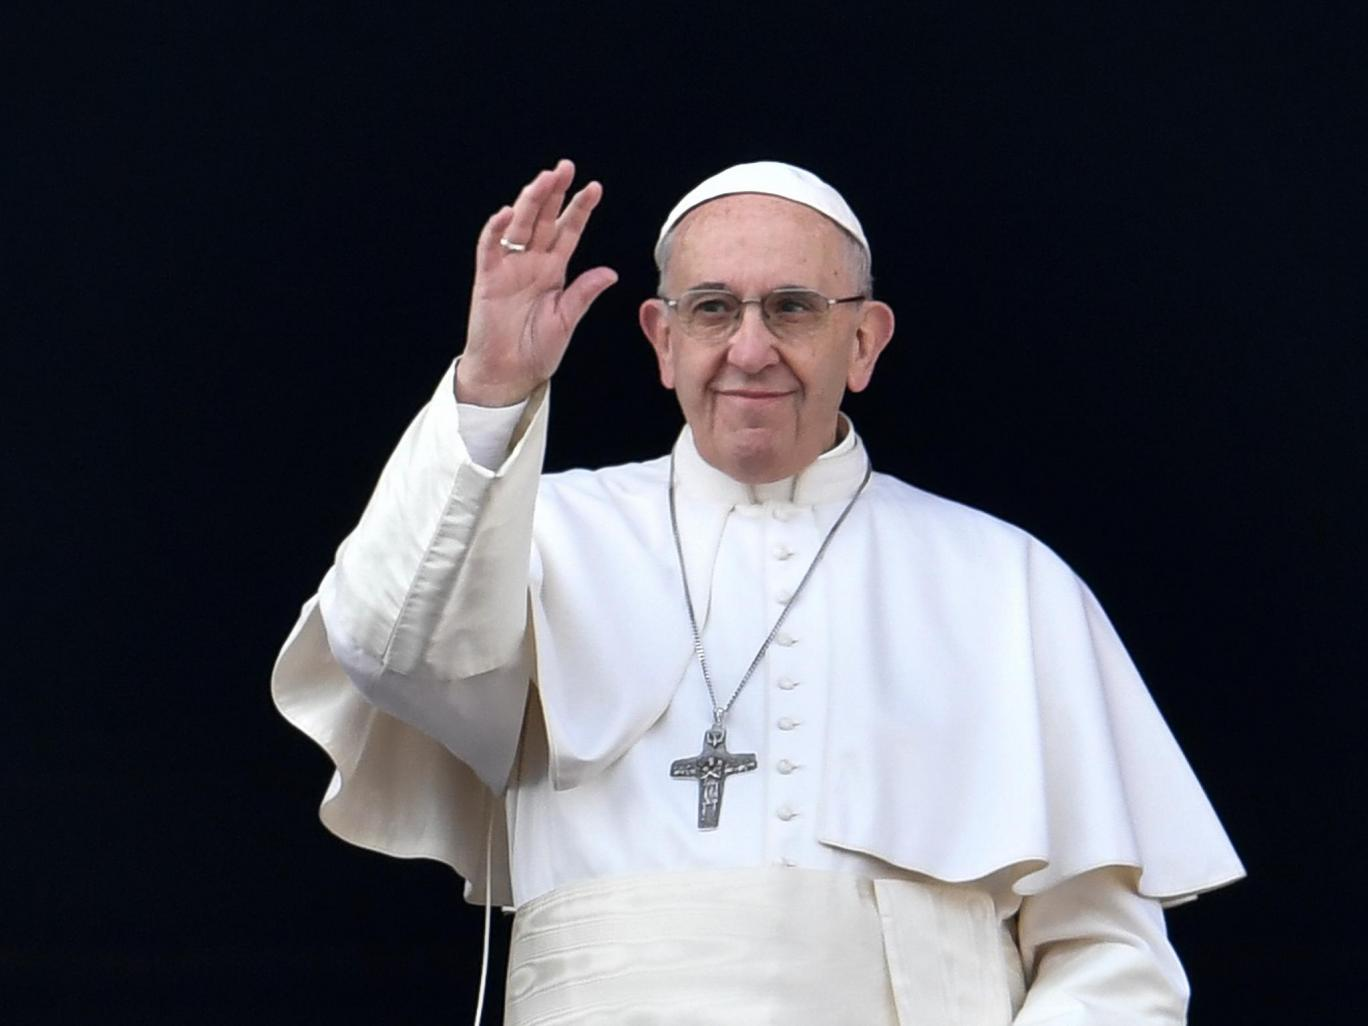 Pope Francis calls on politicians to do more to help refugees and migrants